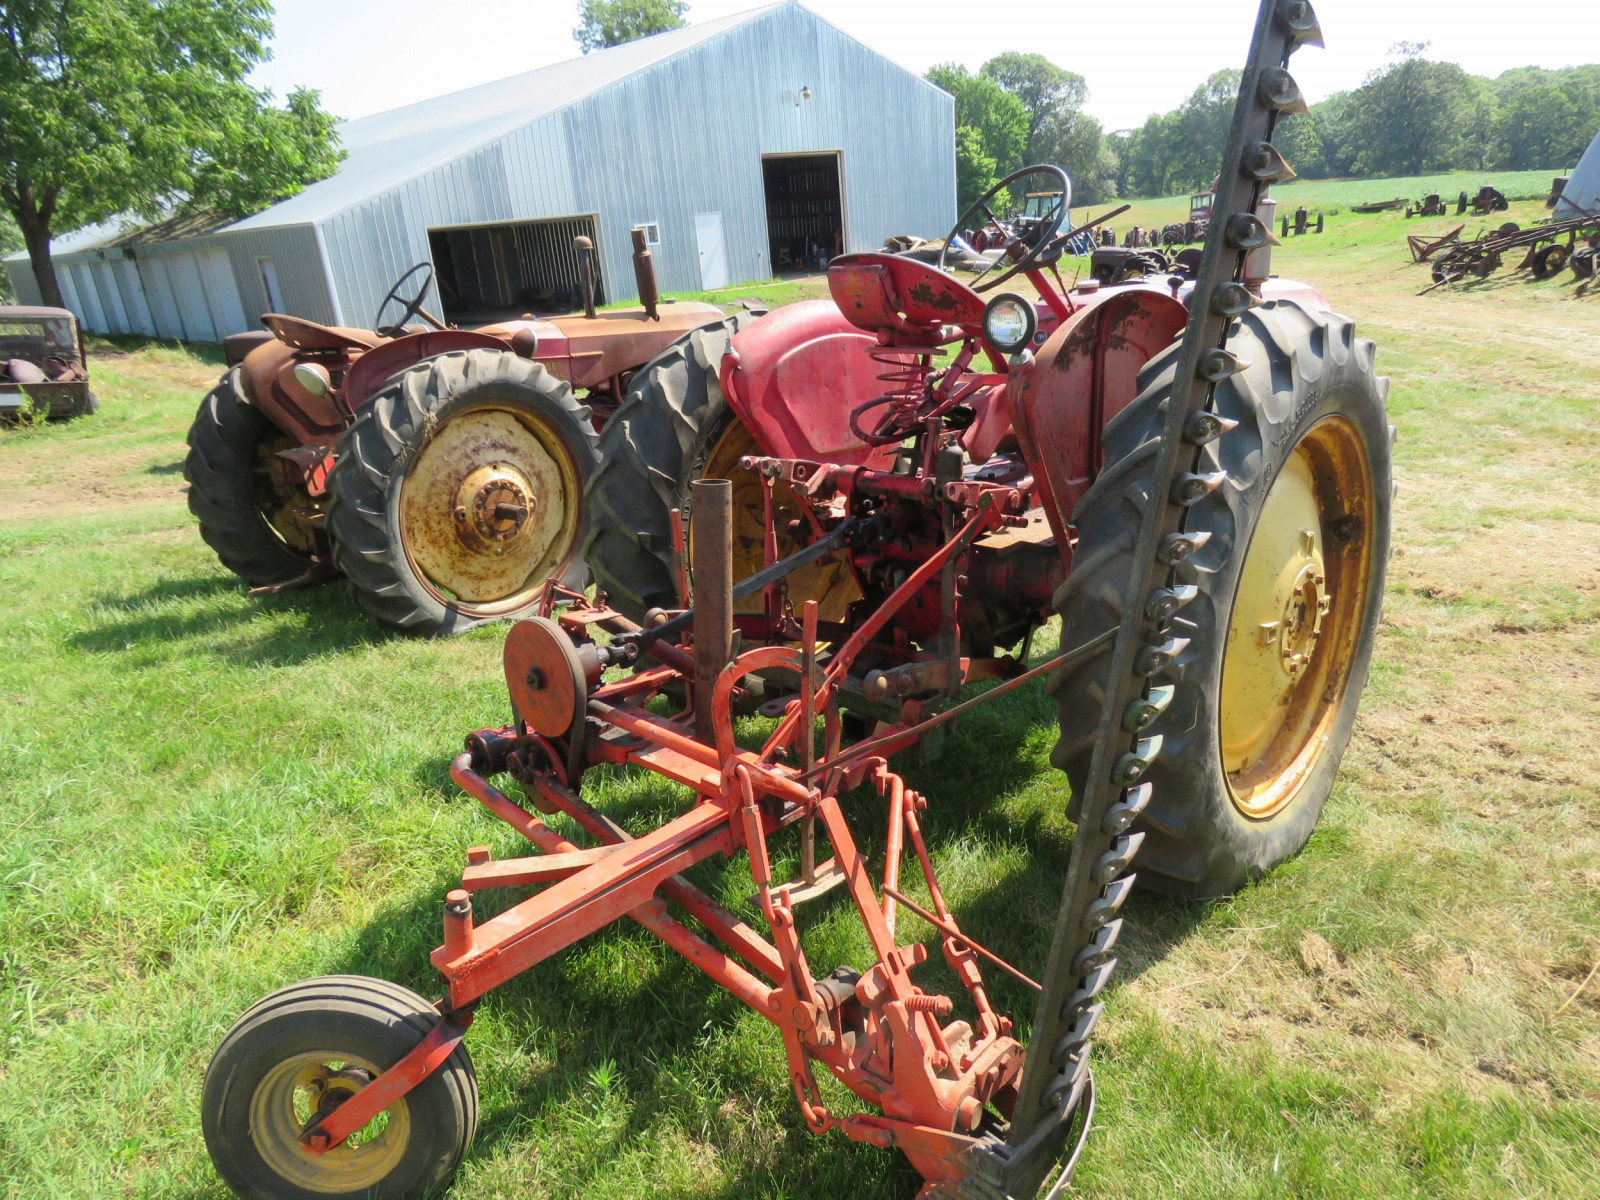 1955 Massey Harris 44 Special Tractor - Image 4